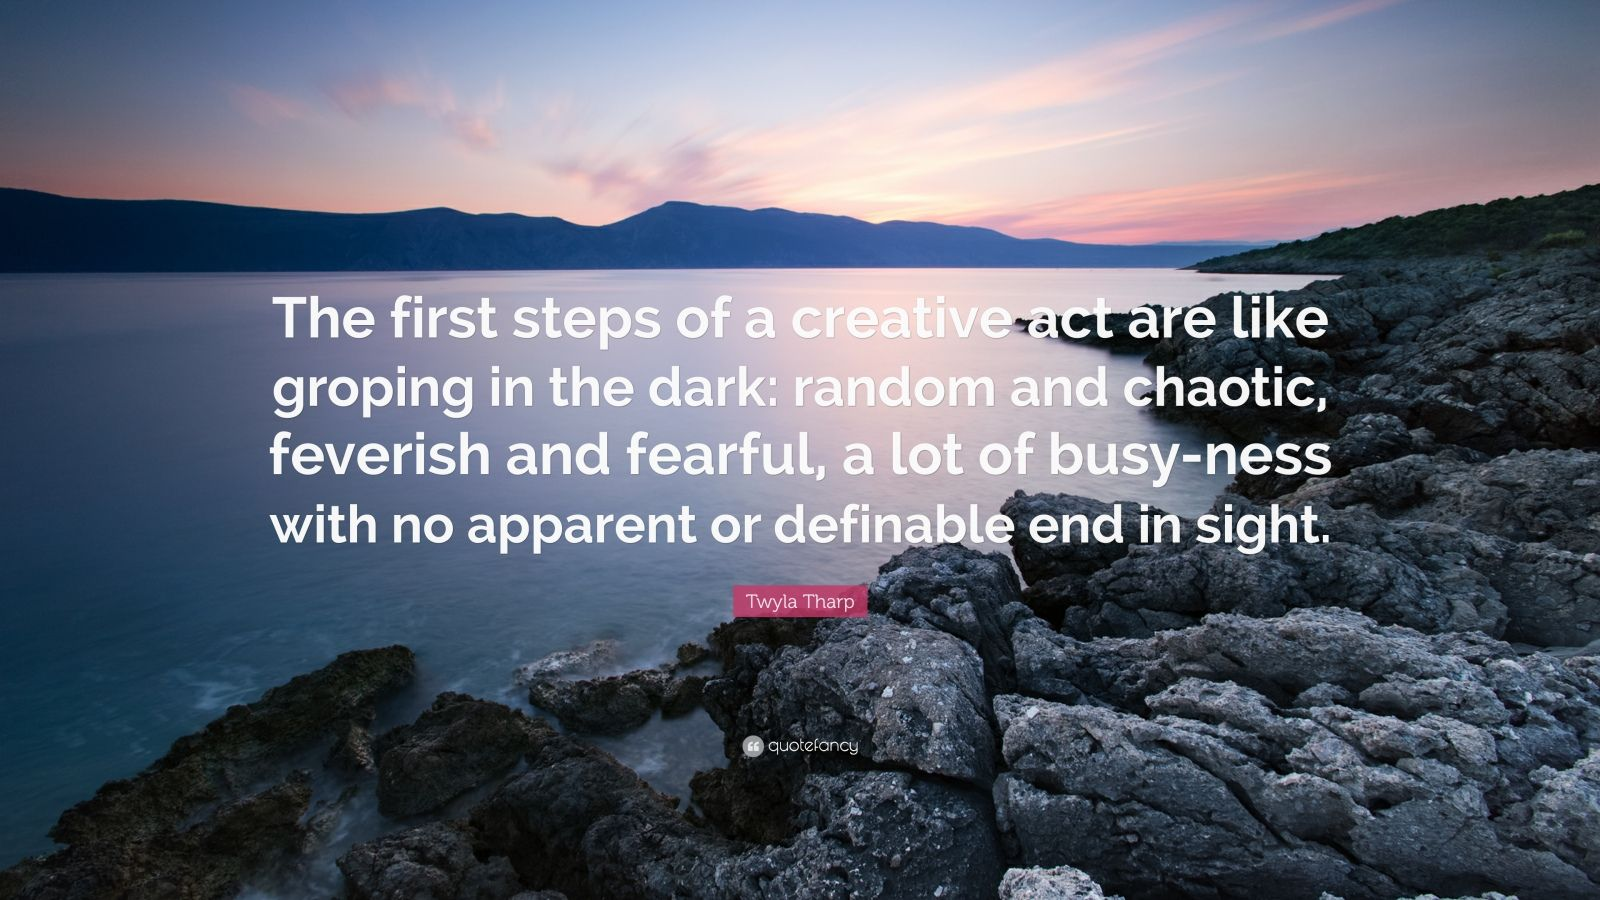 """Twyla Tharp Quote: """"The first steps of a creative act are like groping in the dark: random and chaotic, feverish and fearful, a lot of busy-ness with no apparent or definable end in sight."""""""